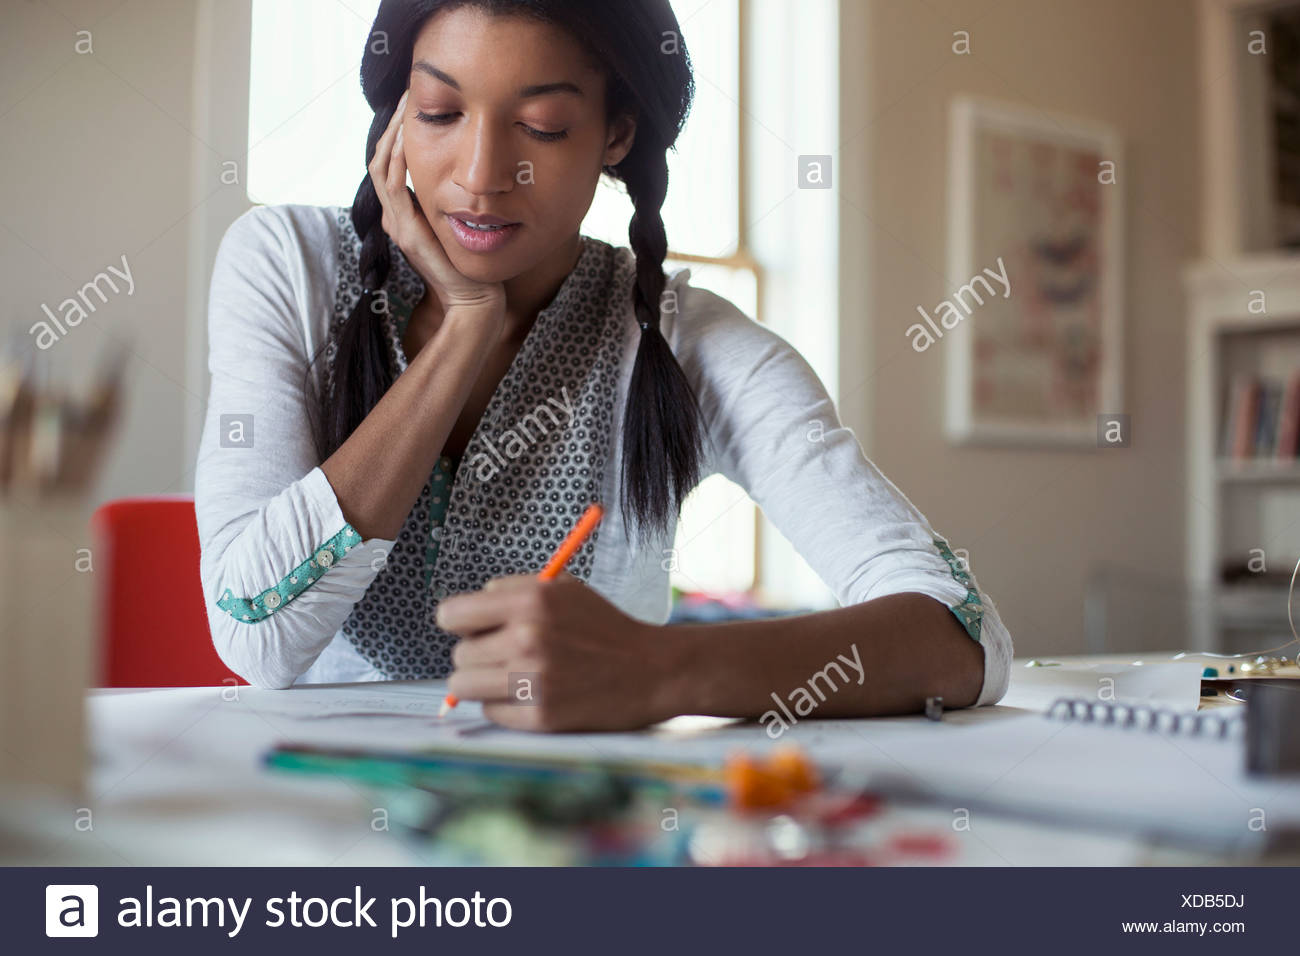 Mid adult female jewelry artist drawing at desk - Stock Image